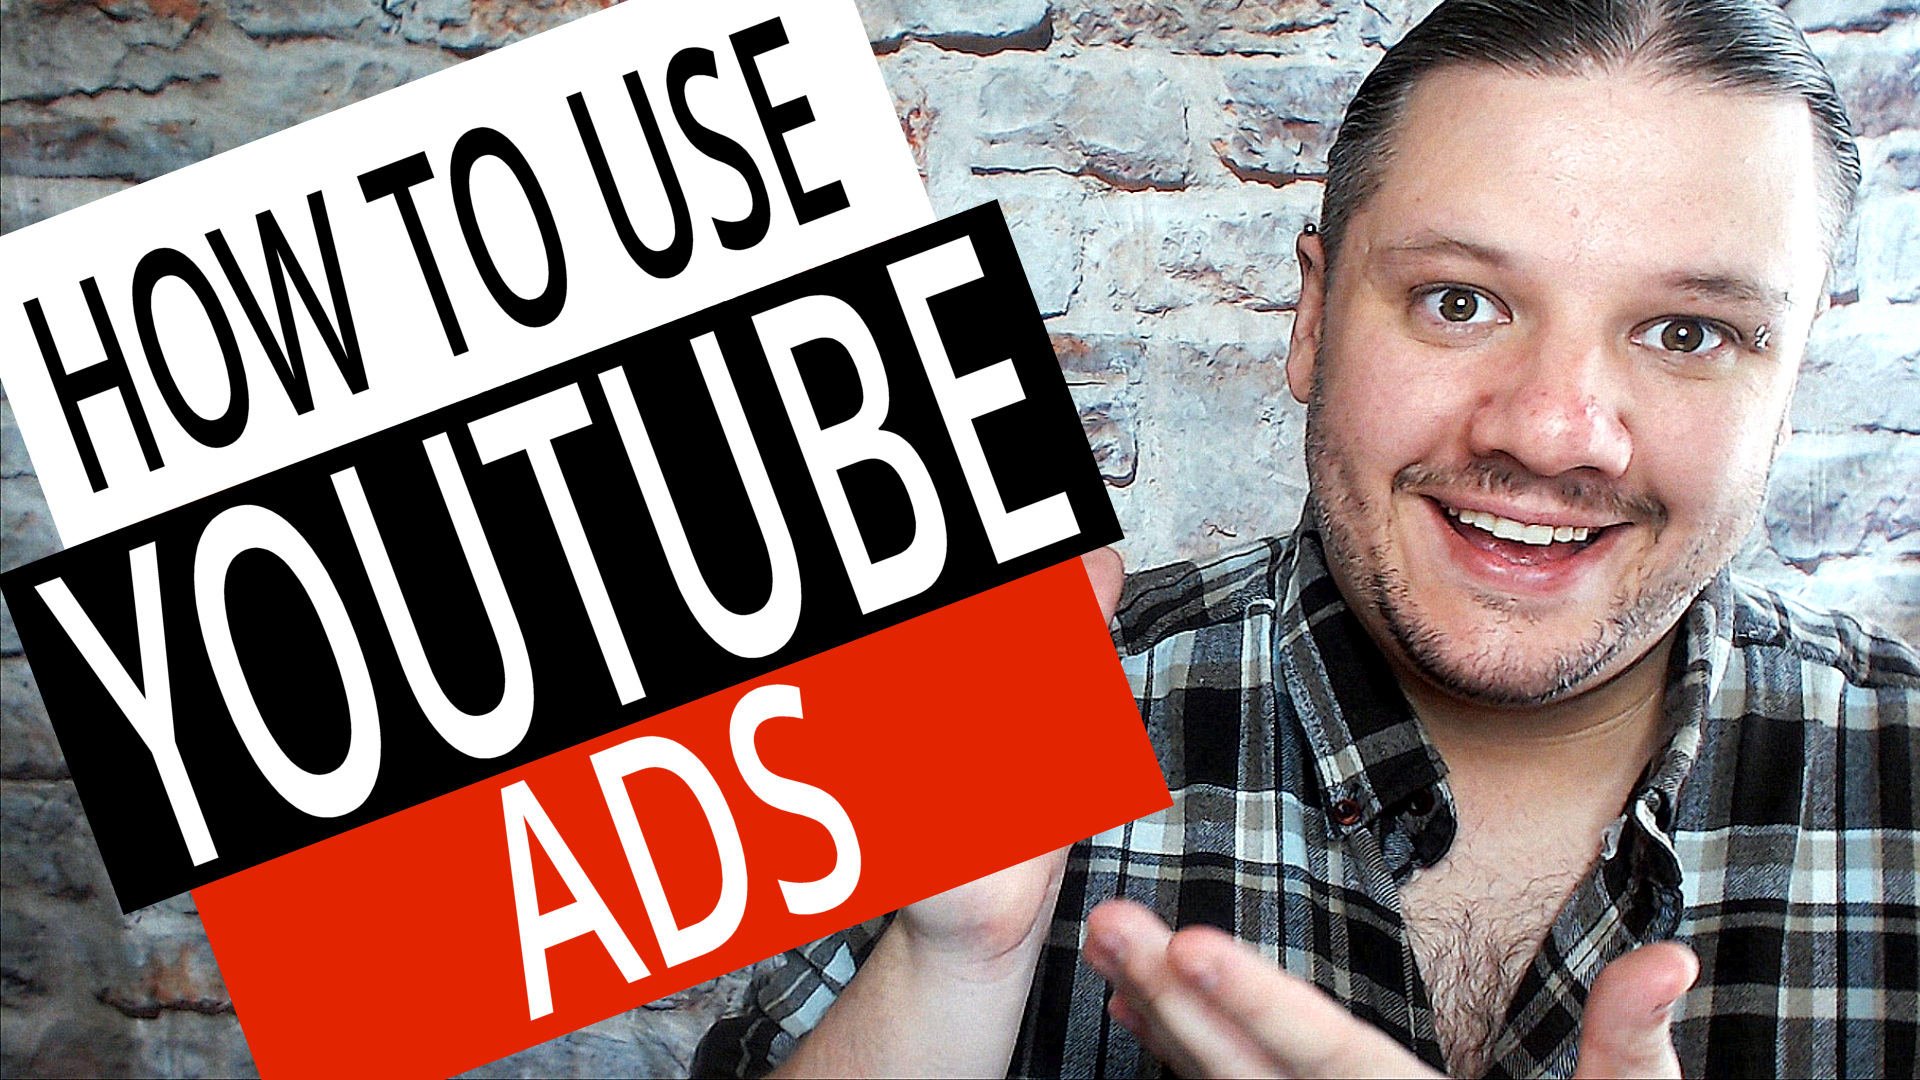 alan spicer,how to promote youtube videos,adwords for video,video ads,how to promote youtube videos in google adwords,How To Promote Your YouTube Video with YouTube Ads,how to promote youtube videos with adwords,promote videos with google ads,promote youtube videos with adwords,youtube ads,youtube video advertising,youtube video adverts,how to use youtube video adverts,how to use youtube ads,adwords tutorial,youtube ads tutorial,youtube advertising tutorial,asyt